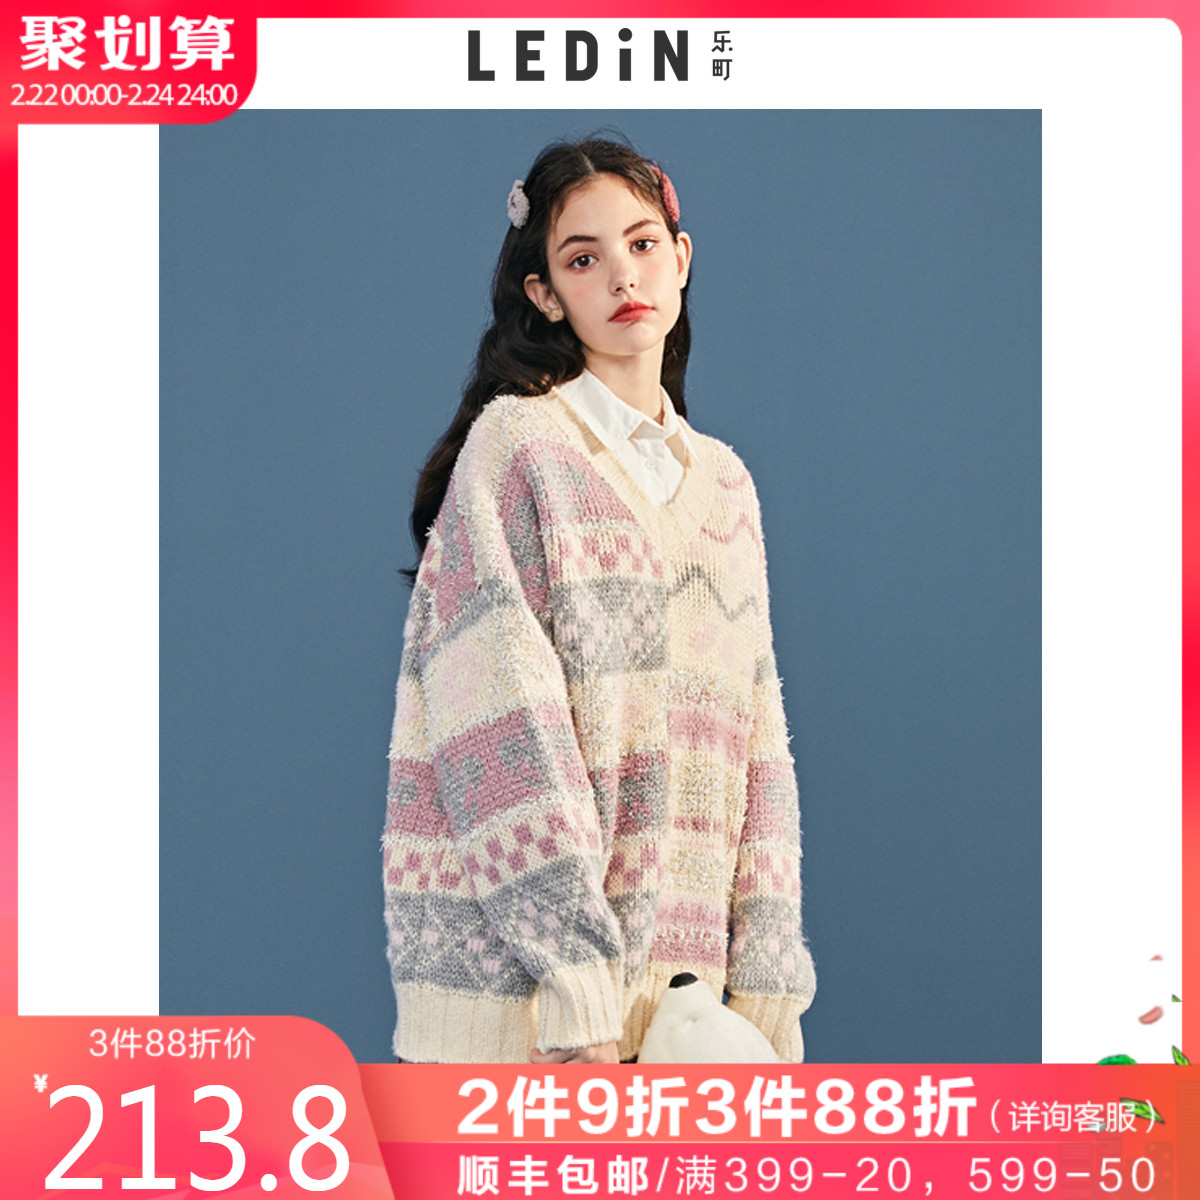 Leting V-neck jacquard knitwear new style striped sweater in spring 2020 women's loose outside wear lazy spring style